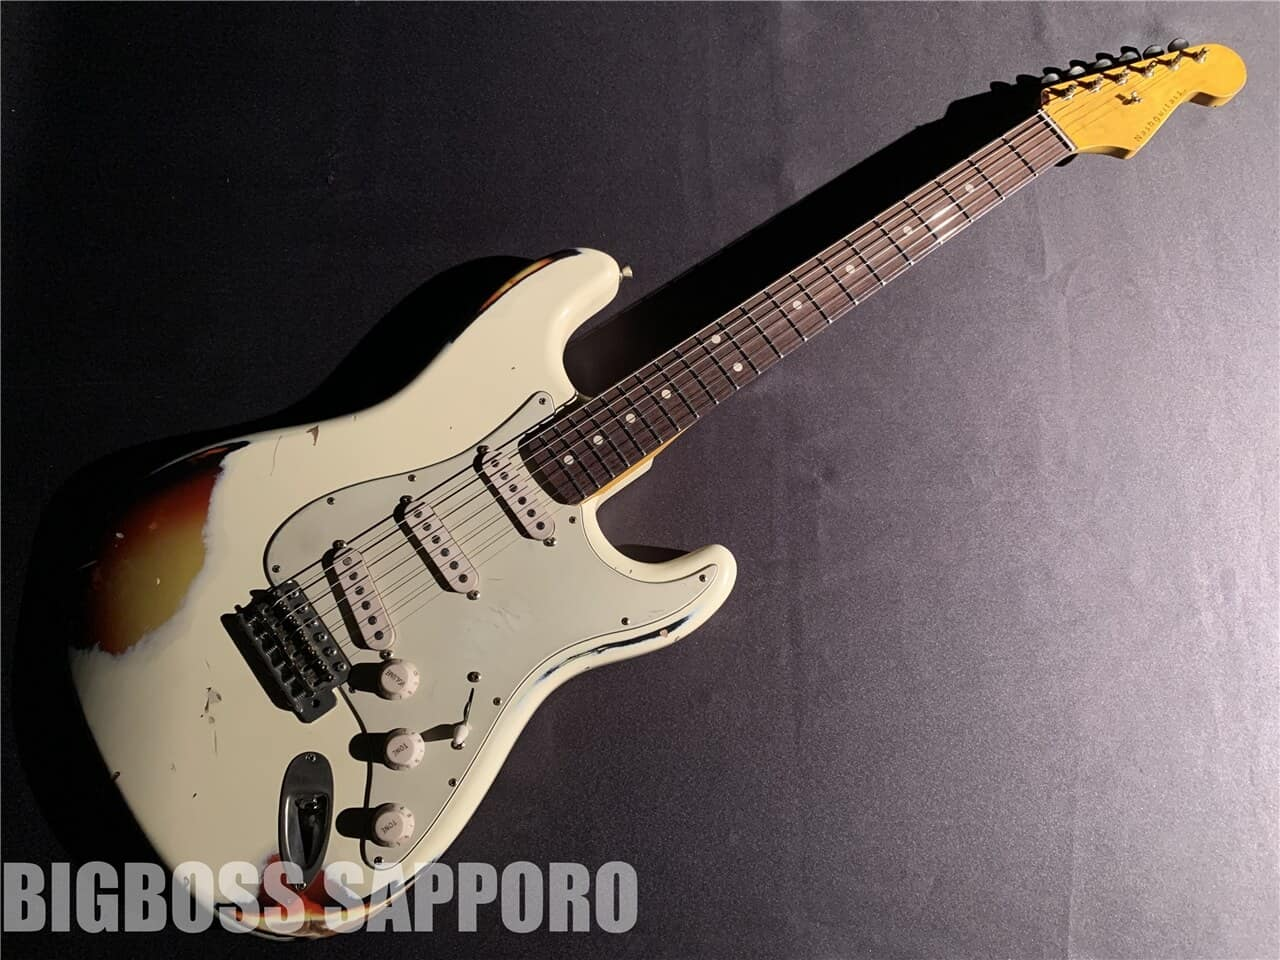 【即納可能】Nash Guitars(ナッシュギターズ) S63 (OlympicWhite over 3Tone Sunburst) 札幌店